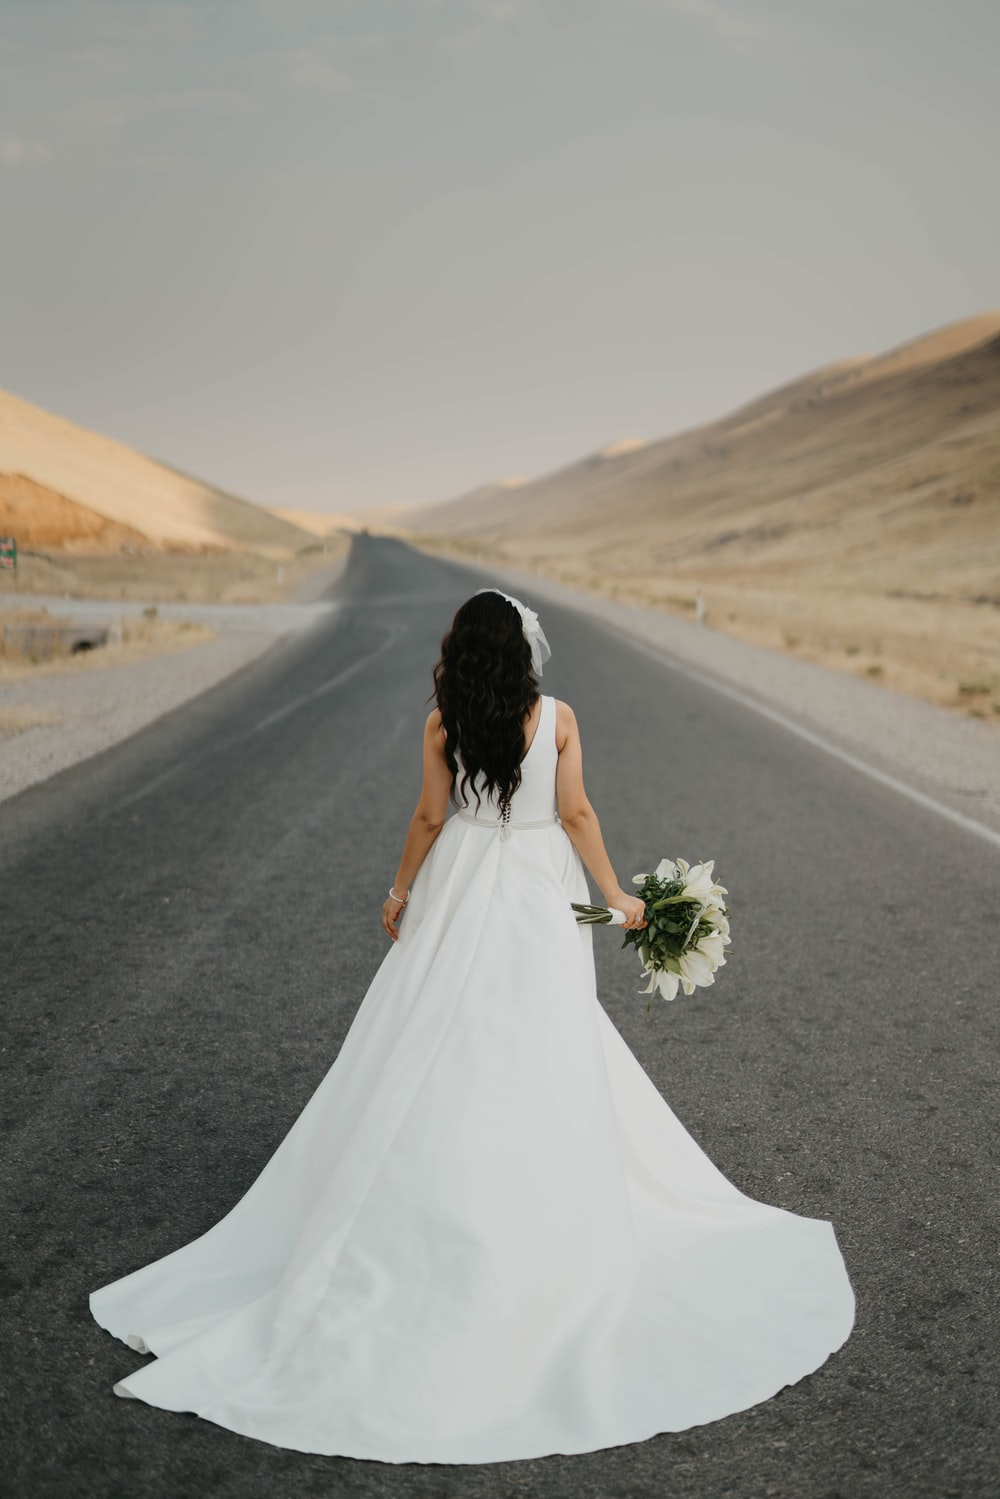 woman in white wedding dress holding bouquet of flowers walking on gray asphalt road during daytime